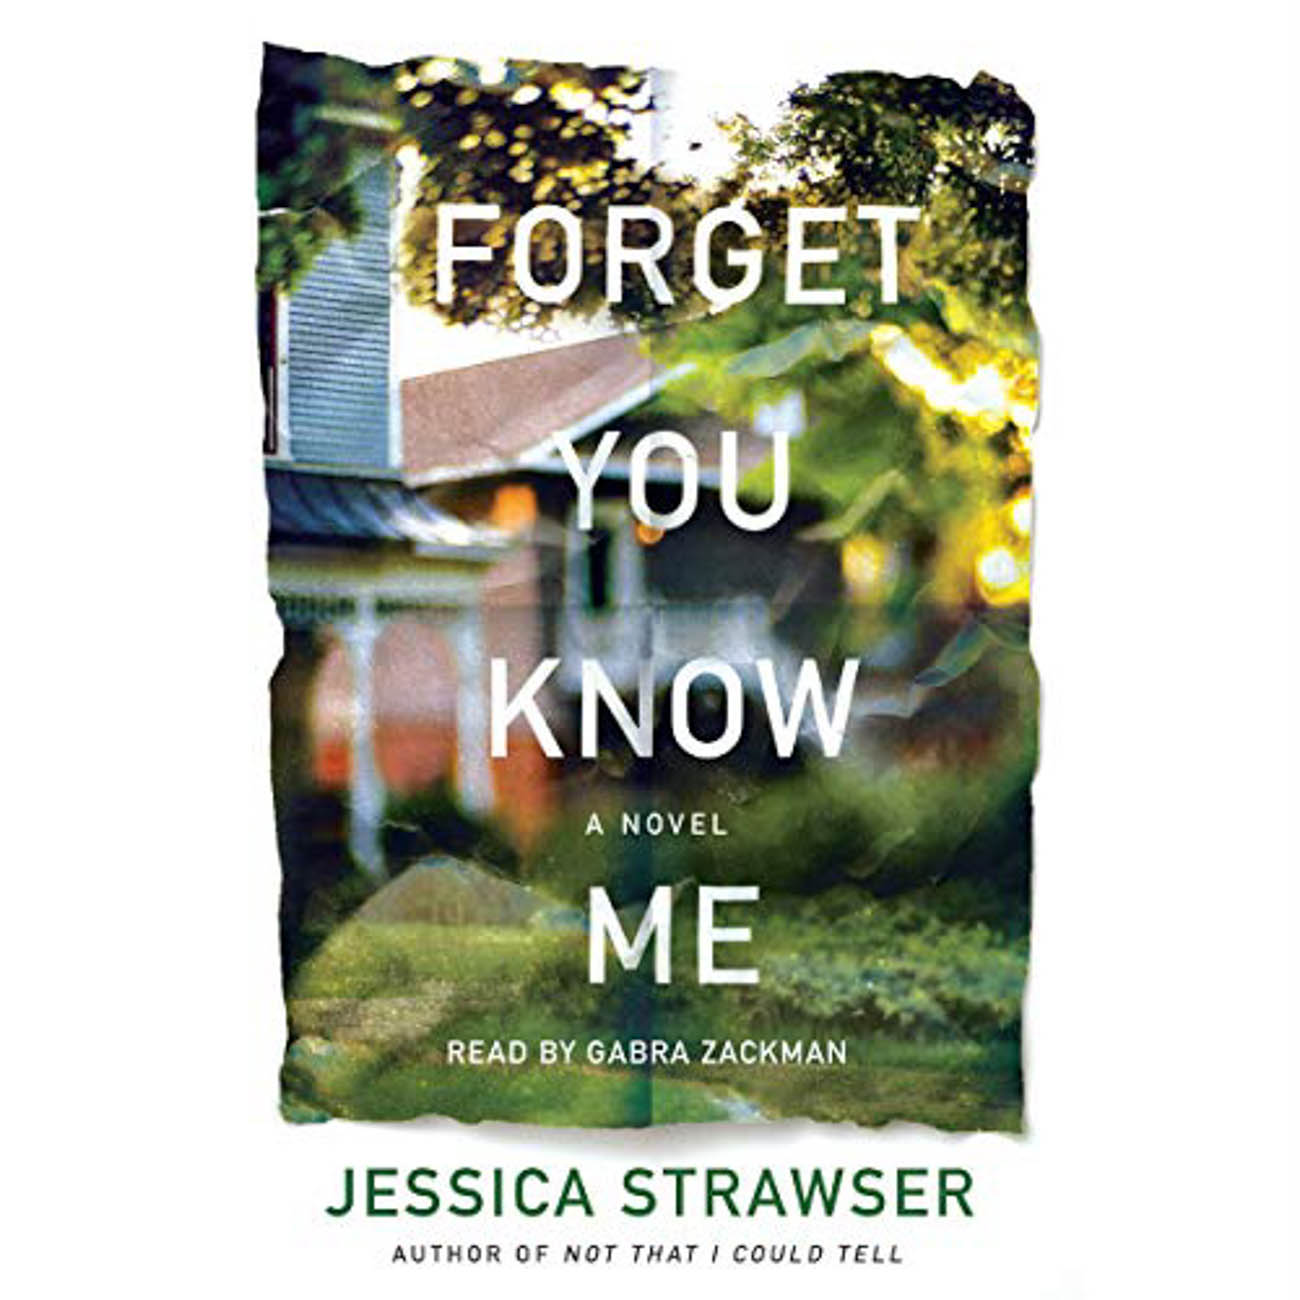 Jessica Strawser is an editor-at-large of Writer's Digest magazine, and the former writer-in-residence at the Public Library of Cincinnati and Hamilton County. She has written three un-put-downable thrillers. / Image courtesy of Audible // Published: 3.23.20